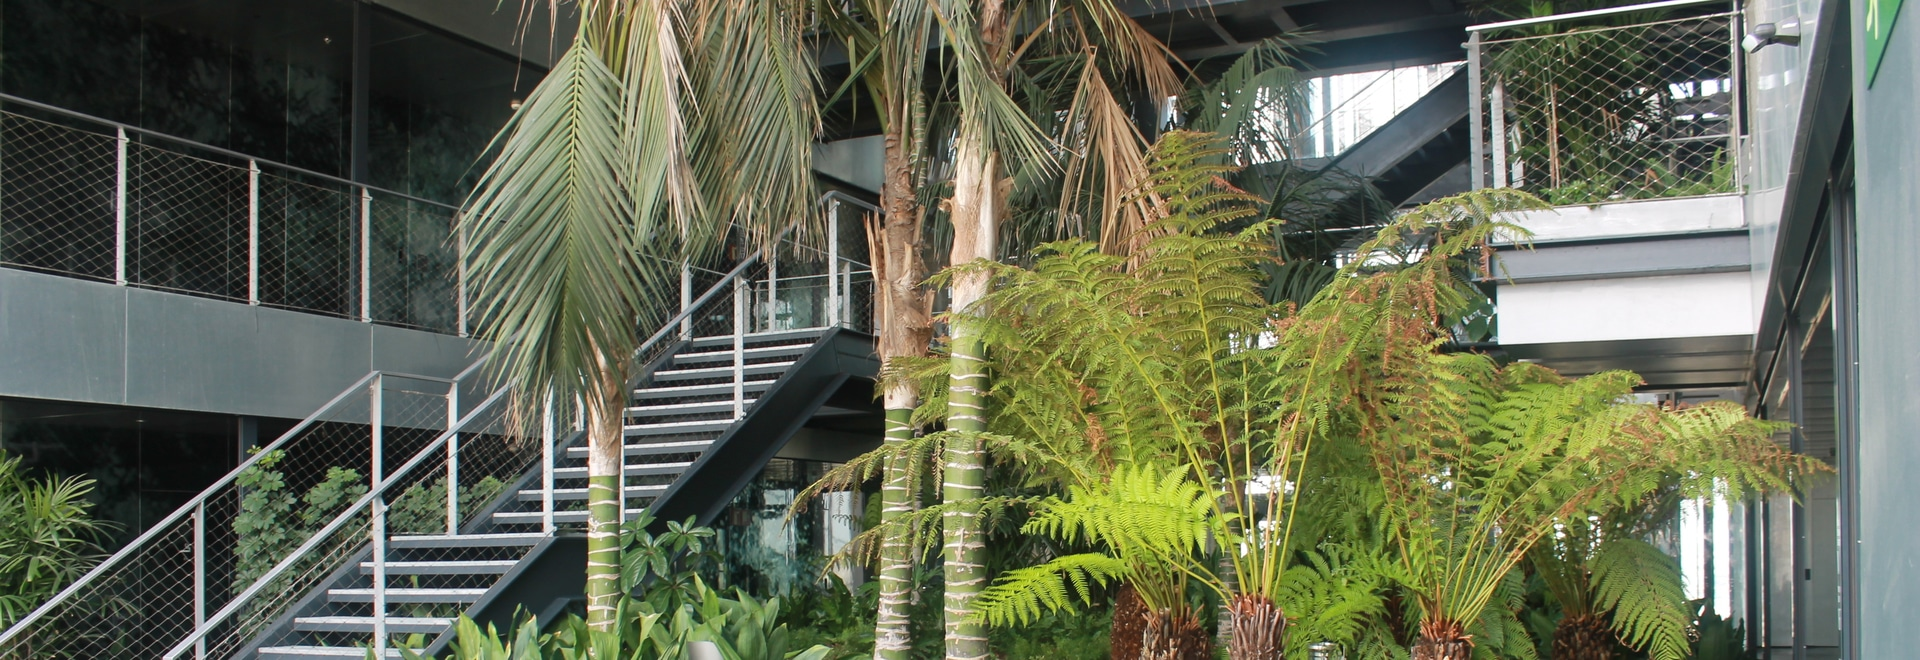 The open vertical garden with its 300 palm trees and other tropical plants